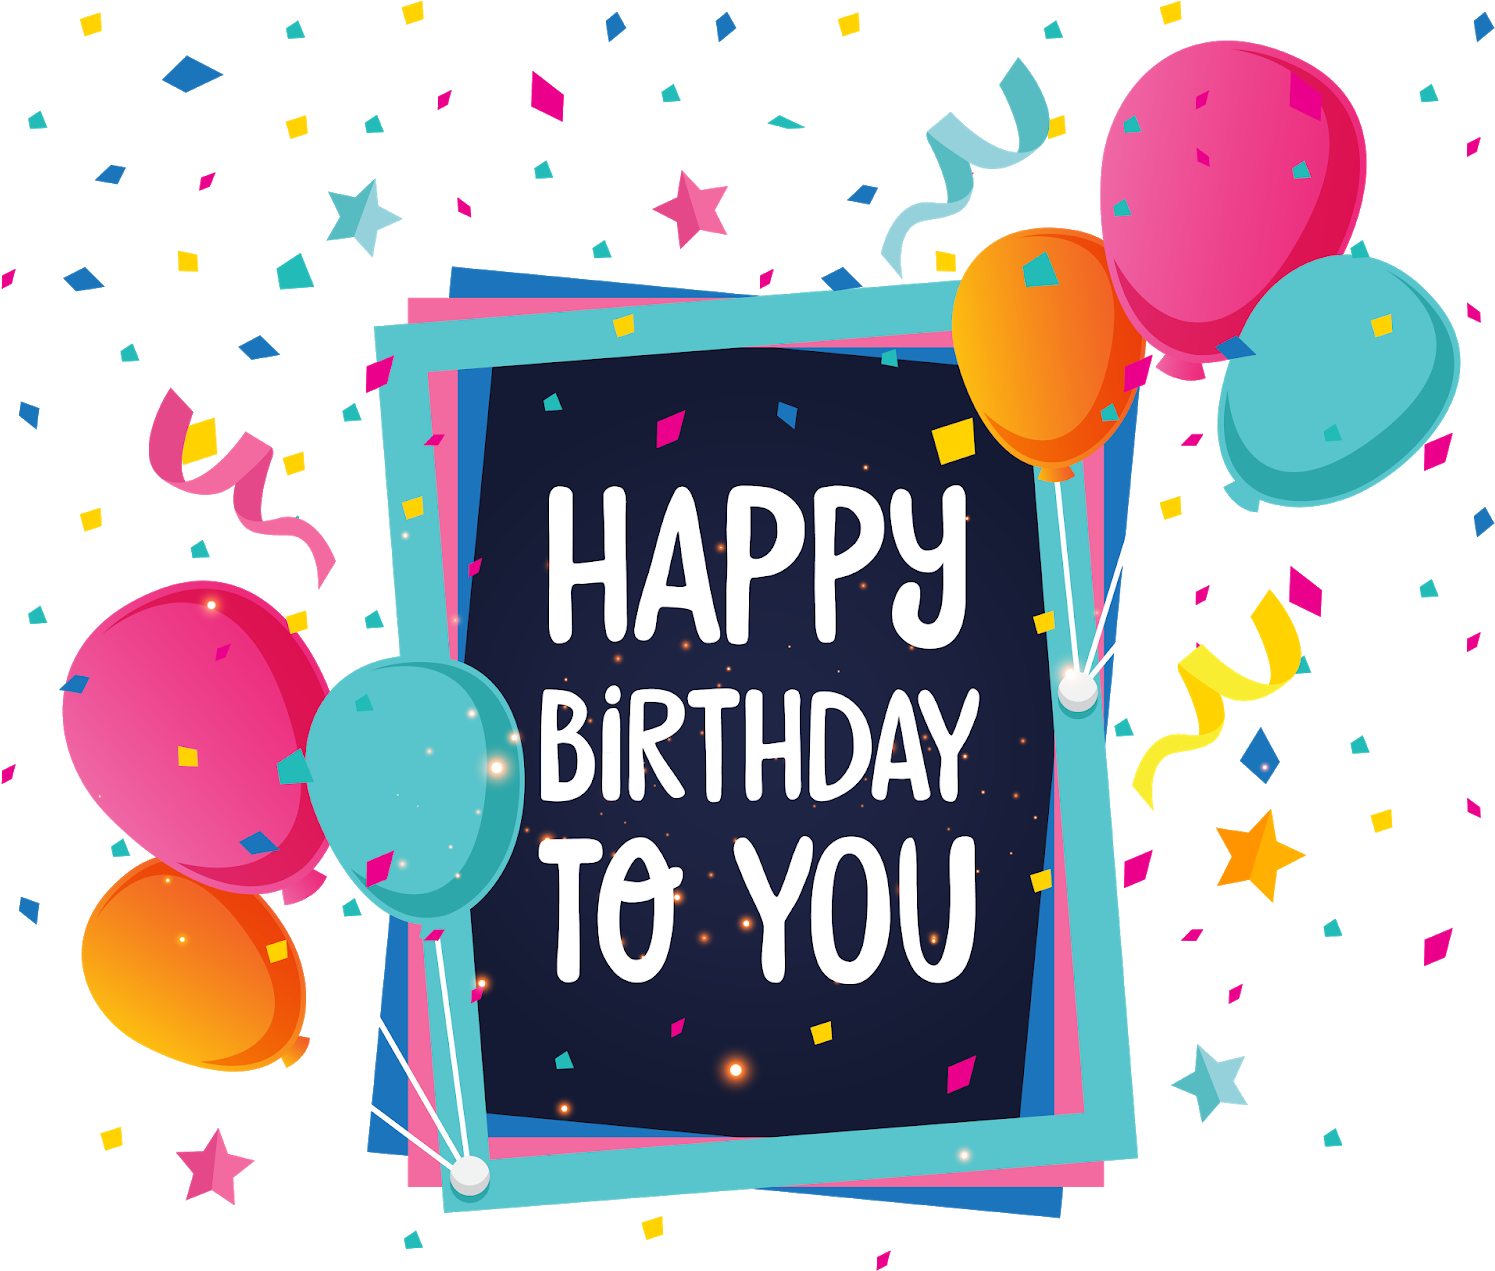 Download Birthday Png Backgrounds Hd Happy Birthday 2018 New Full Size Png Image Pngkit